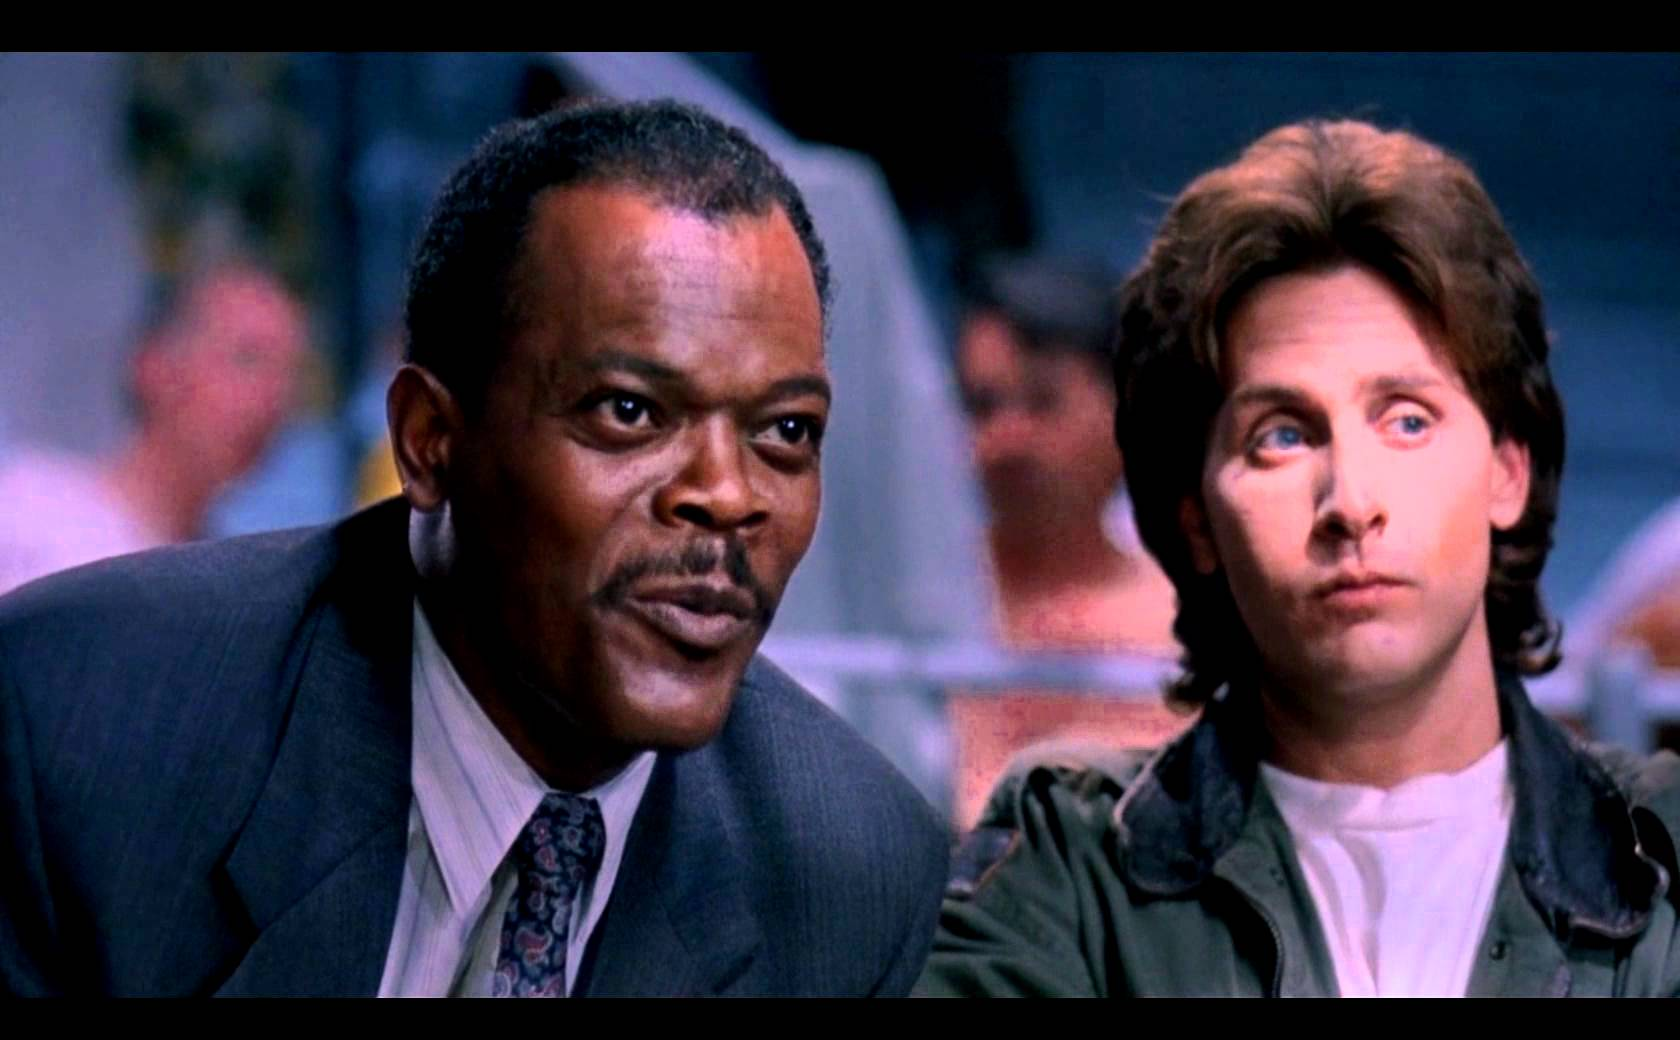 National Lampoon's Loaded Weapon 1 – 1 Snore review